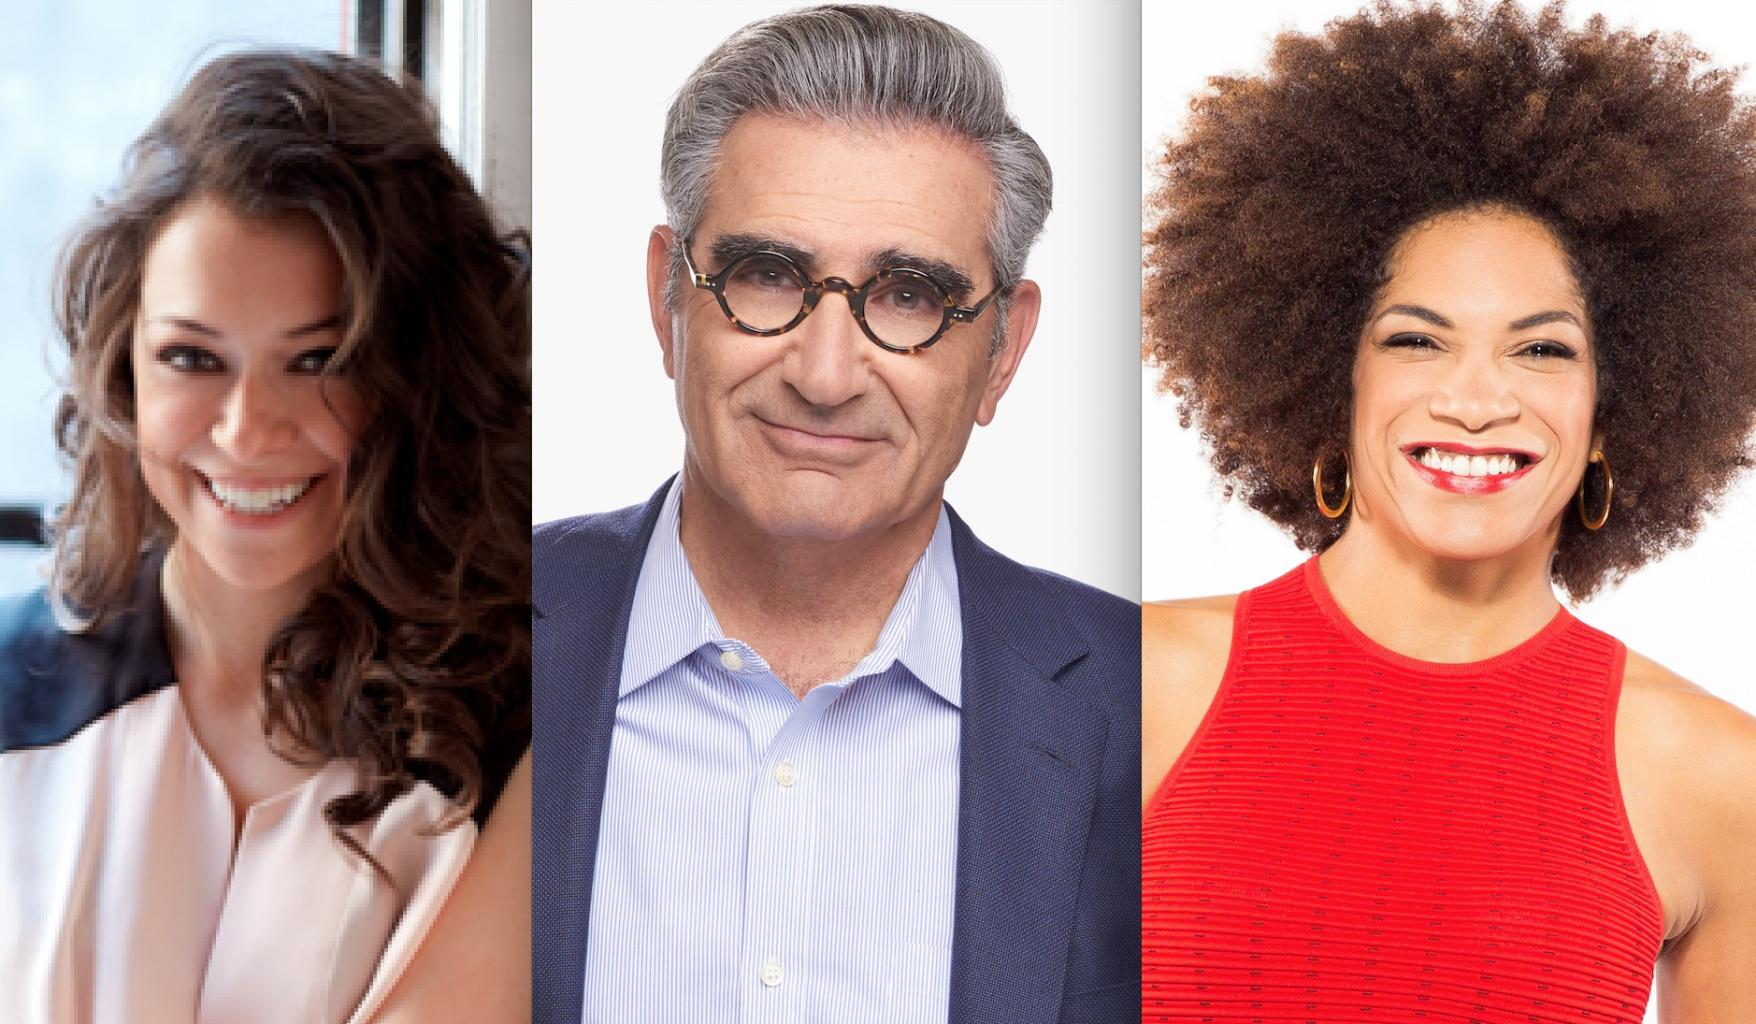 First Round Of Presenters Announced For 2017 Canadian Screen Awards